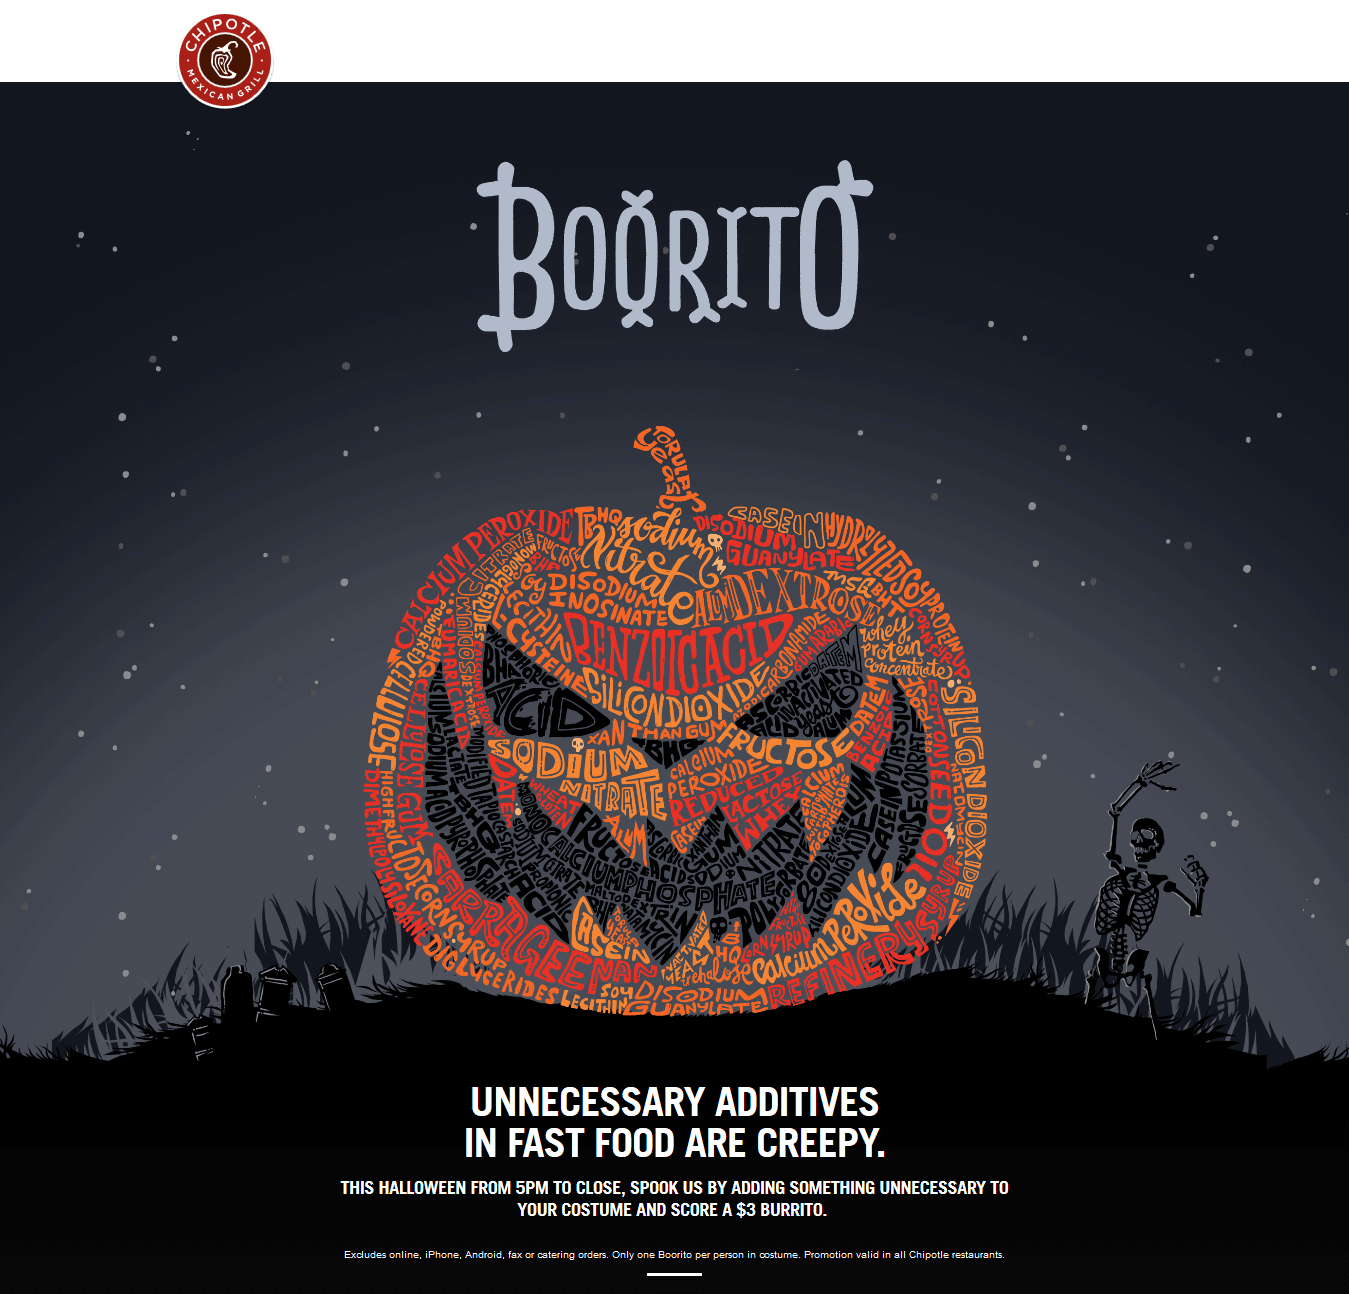 Chipotle Coupon February 2019 $3 burritos in costume Halloween at Chipotle